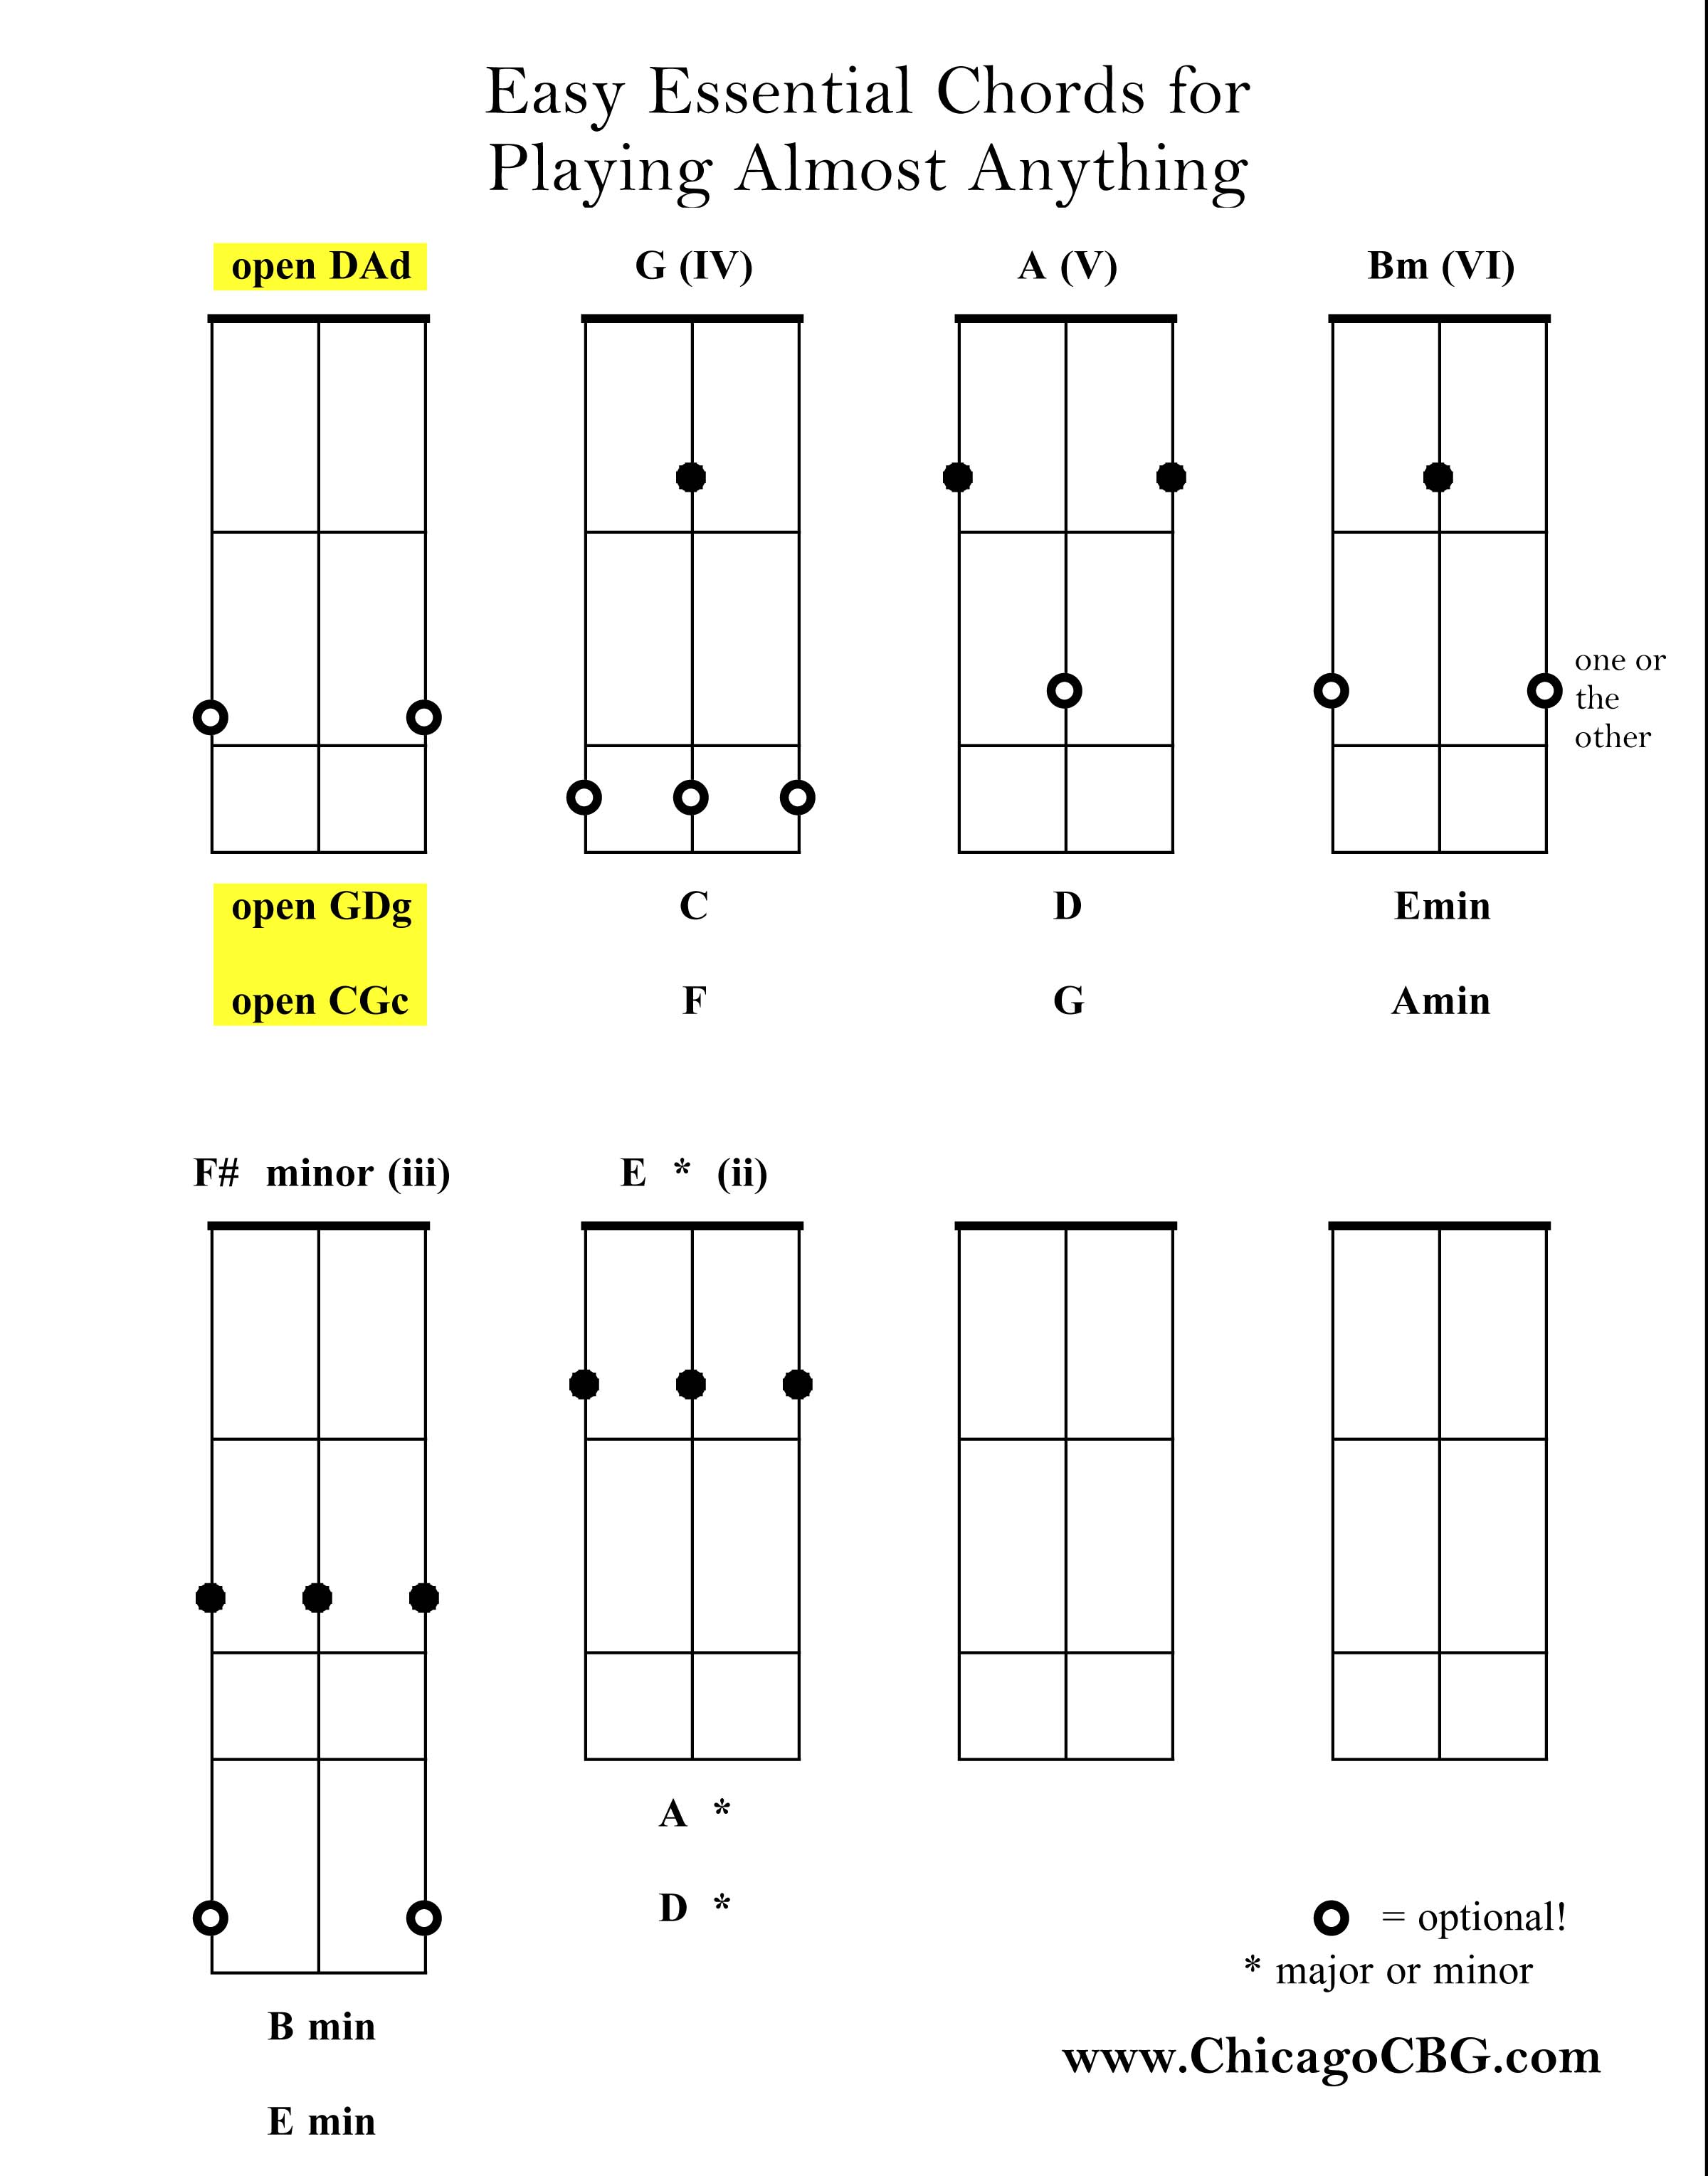 Bad James Bay Chords A Simple Chord Chart For Dulcimer Fretted Instruments